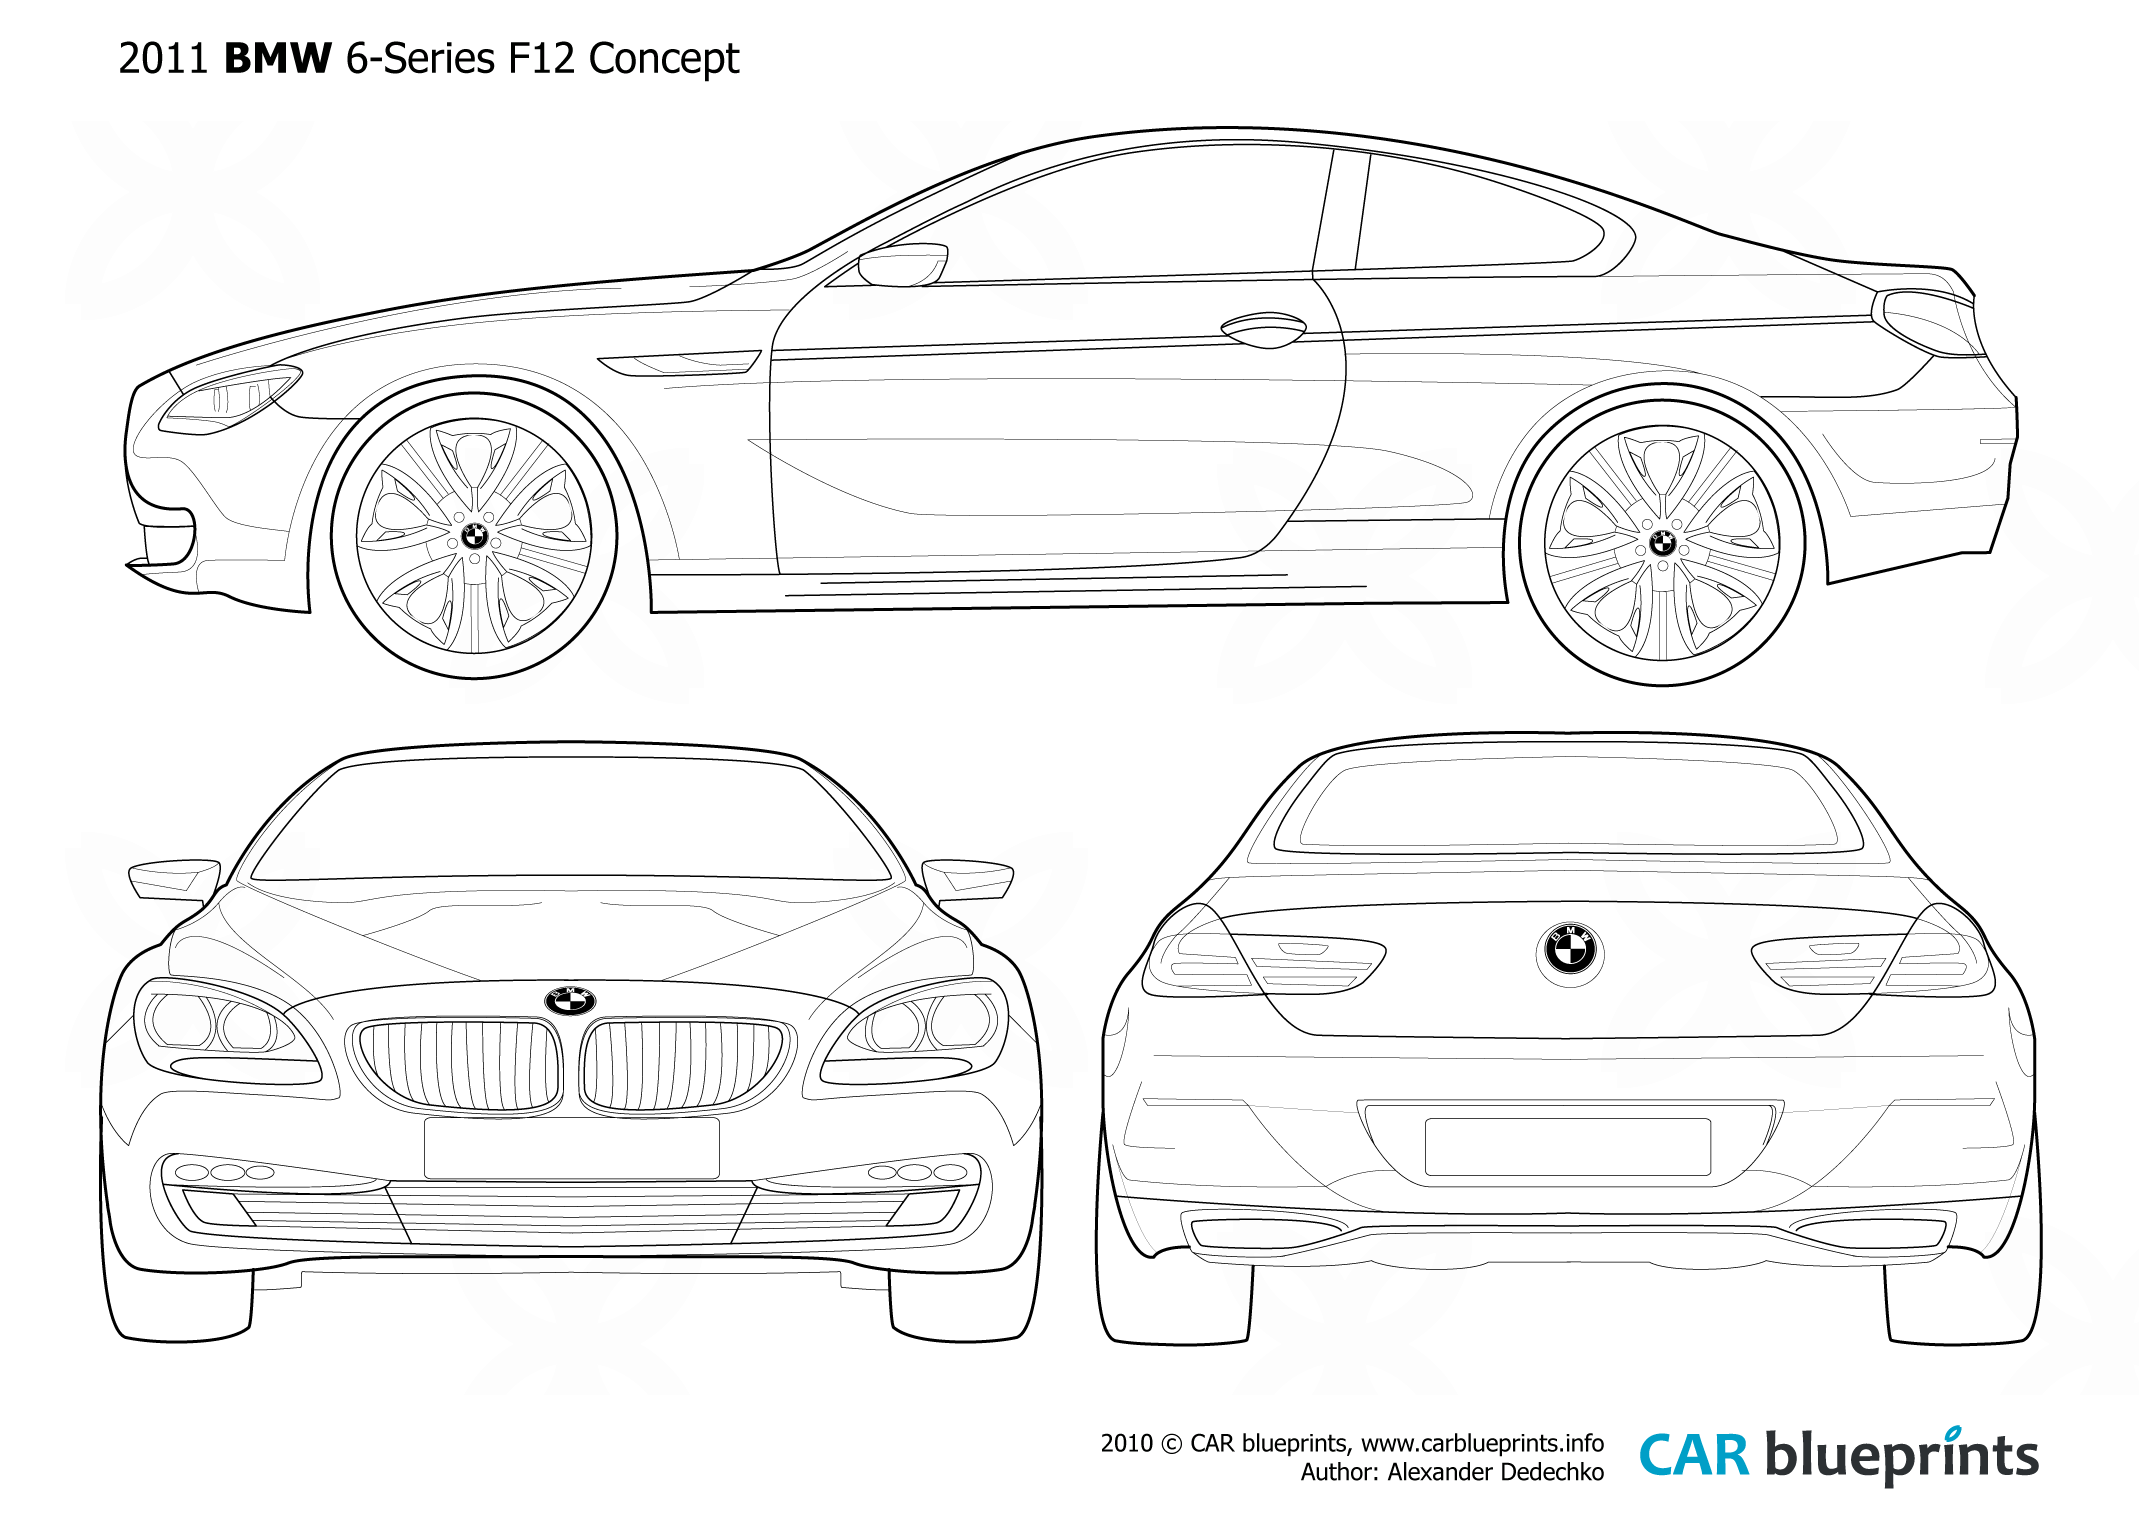 2011 BMW 6-Series F12 Concept Coupe blueprints free - Outlines